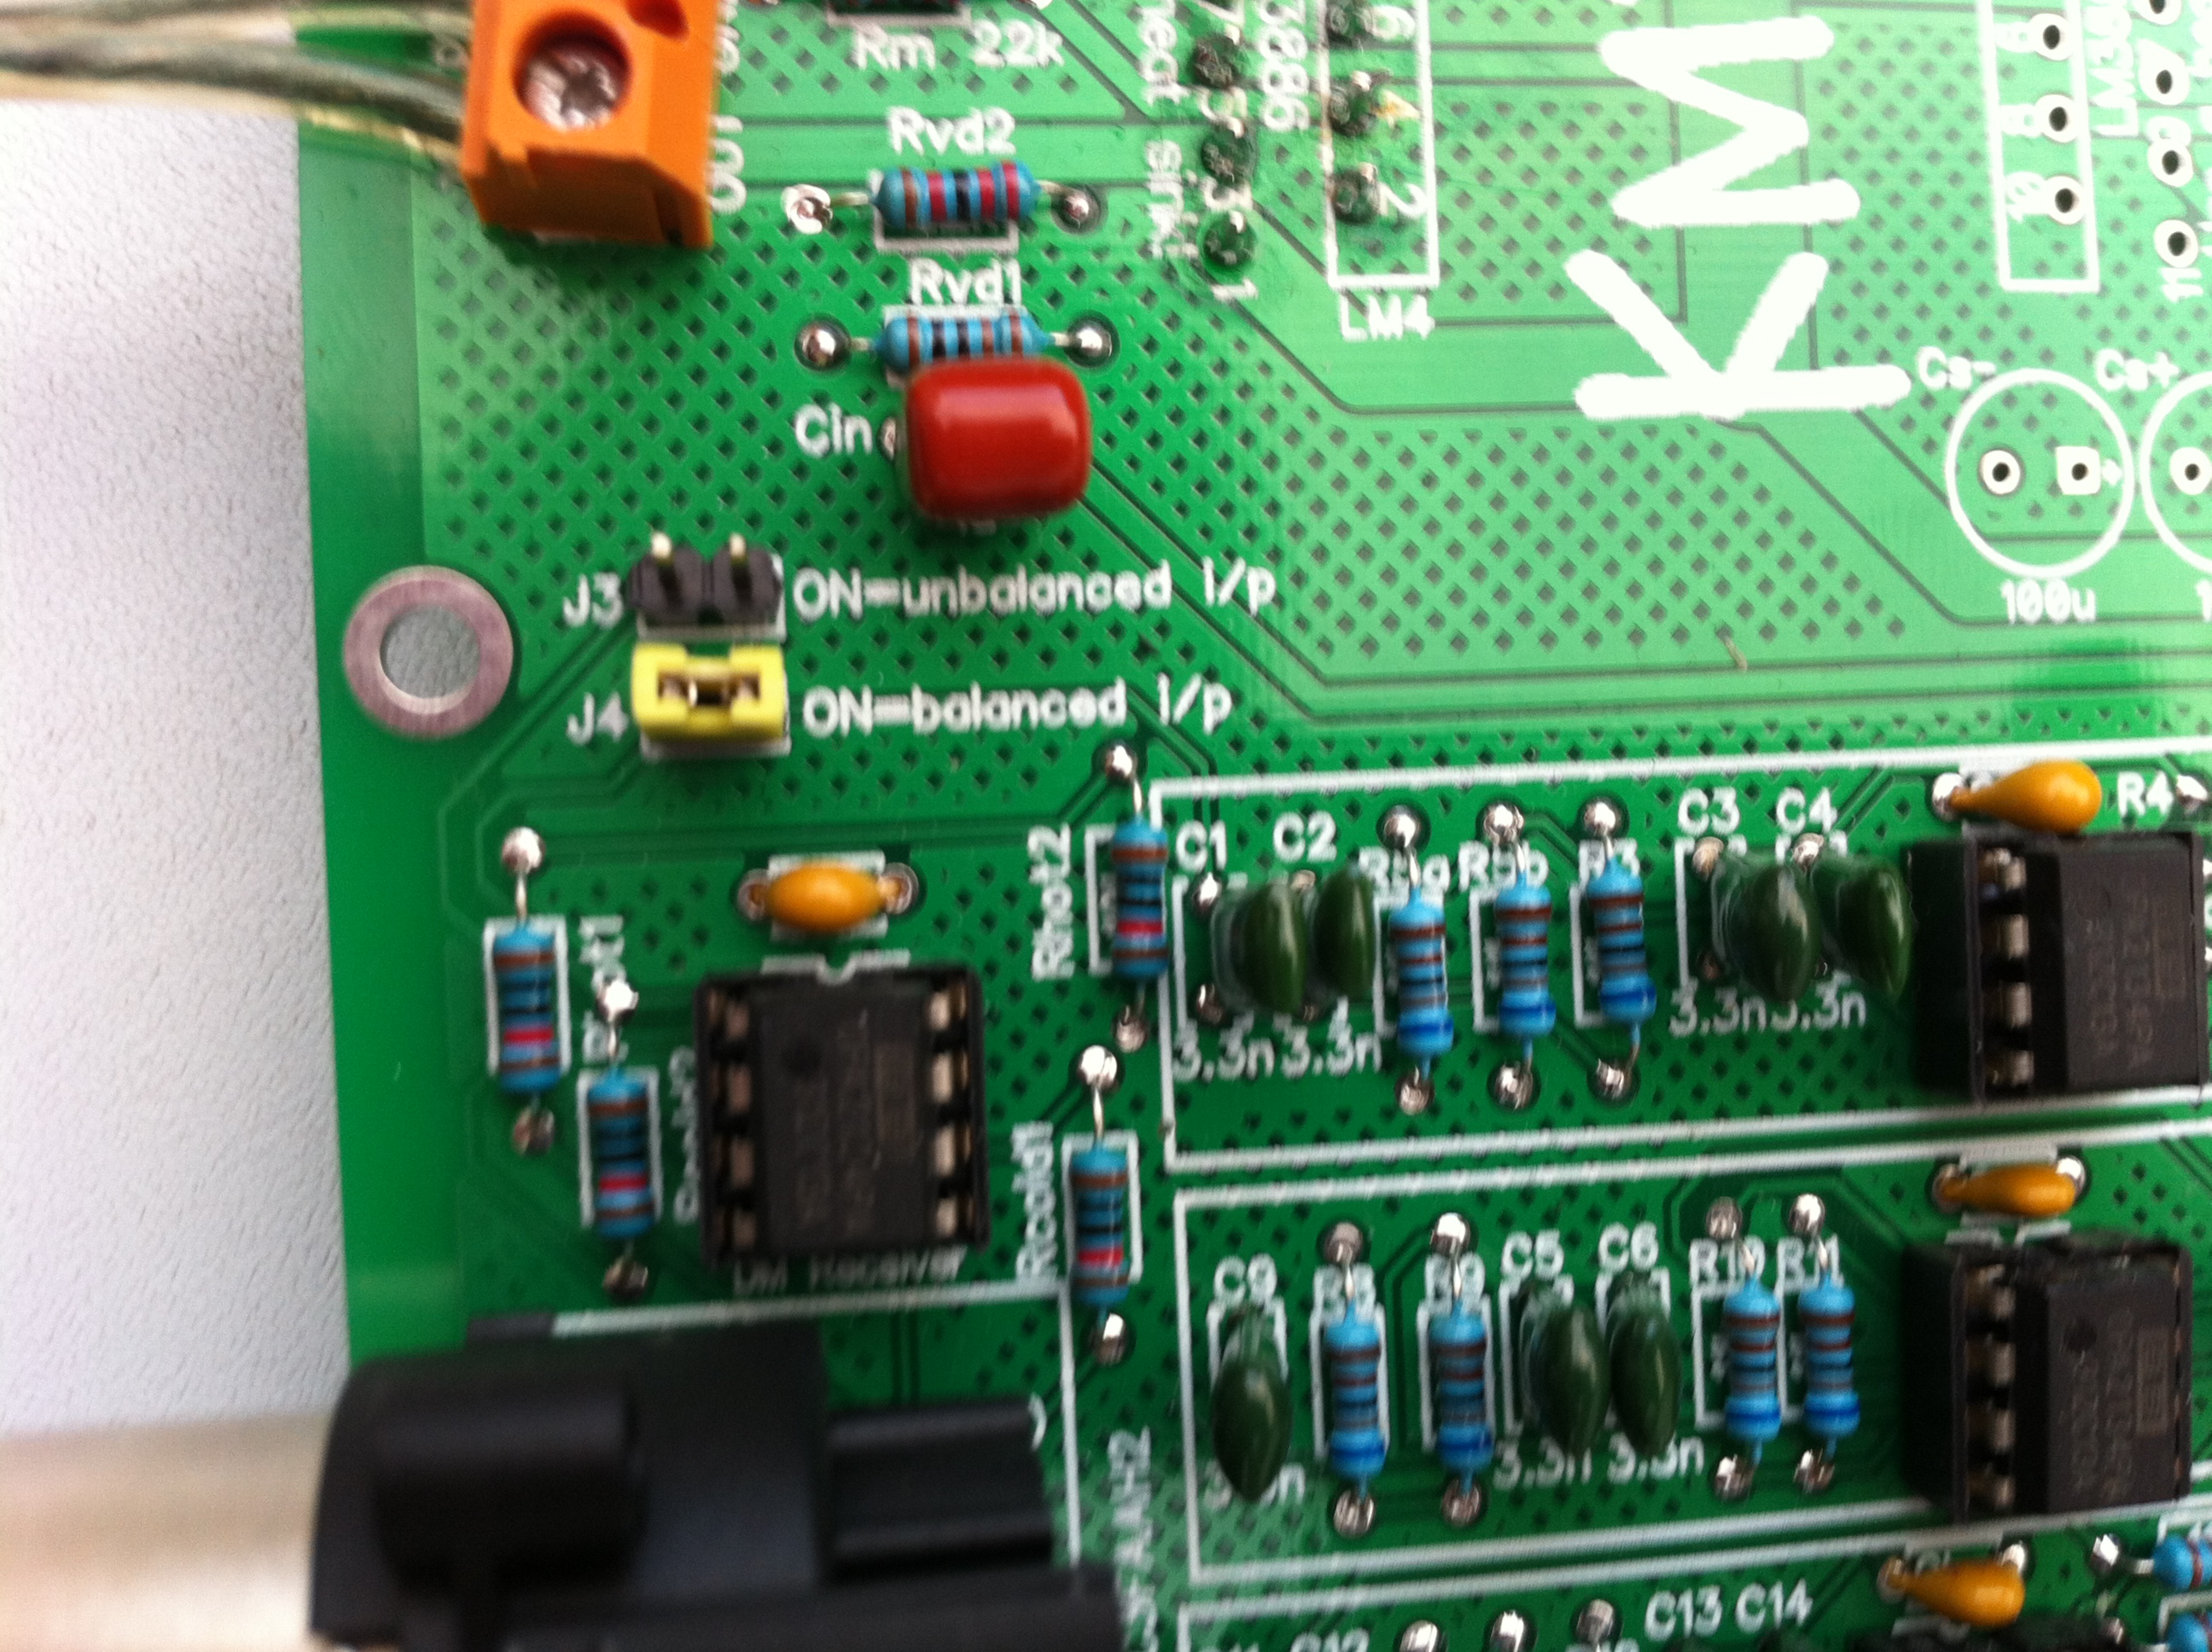 Kmtech Active Speaker Module Rev 101b Dual Ne5532 Subwoofer Processing Circuit Low Pass Filter Board Unbalanced Or Balanced Modes Are Selected By Shorting Jumpers J3 J4 Respectively Do Not Short Both At The Same Time Crossover Frequency